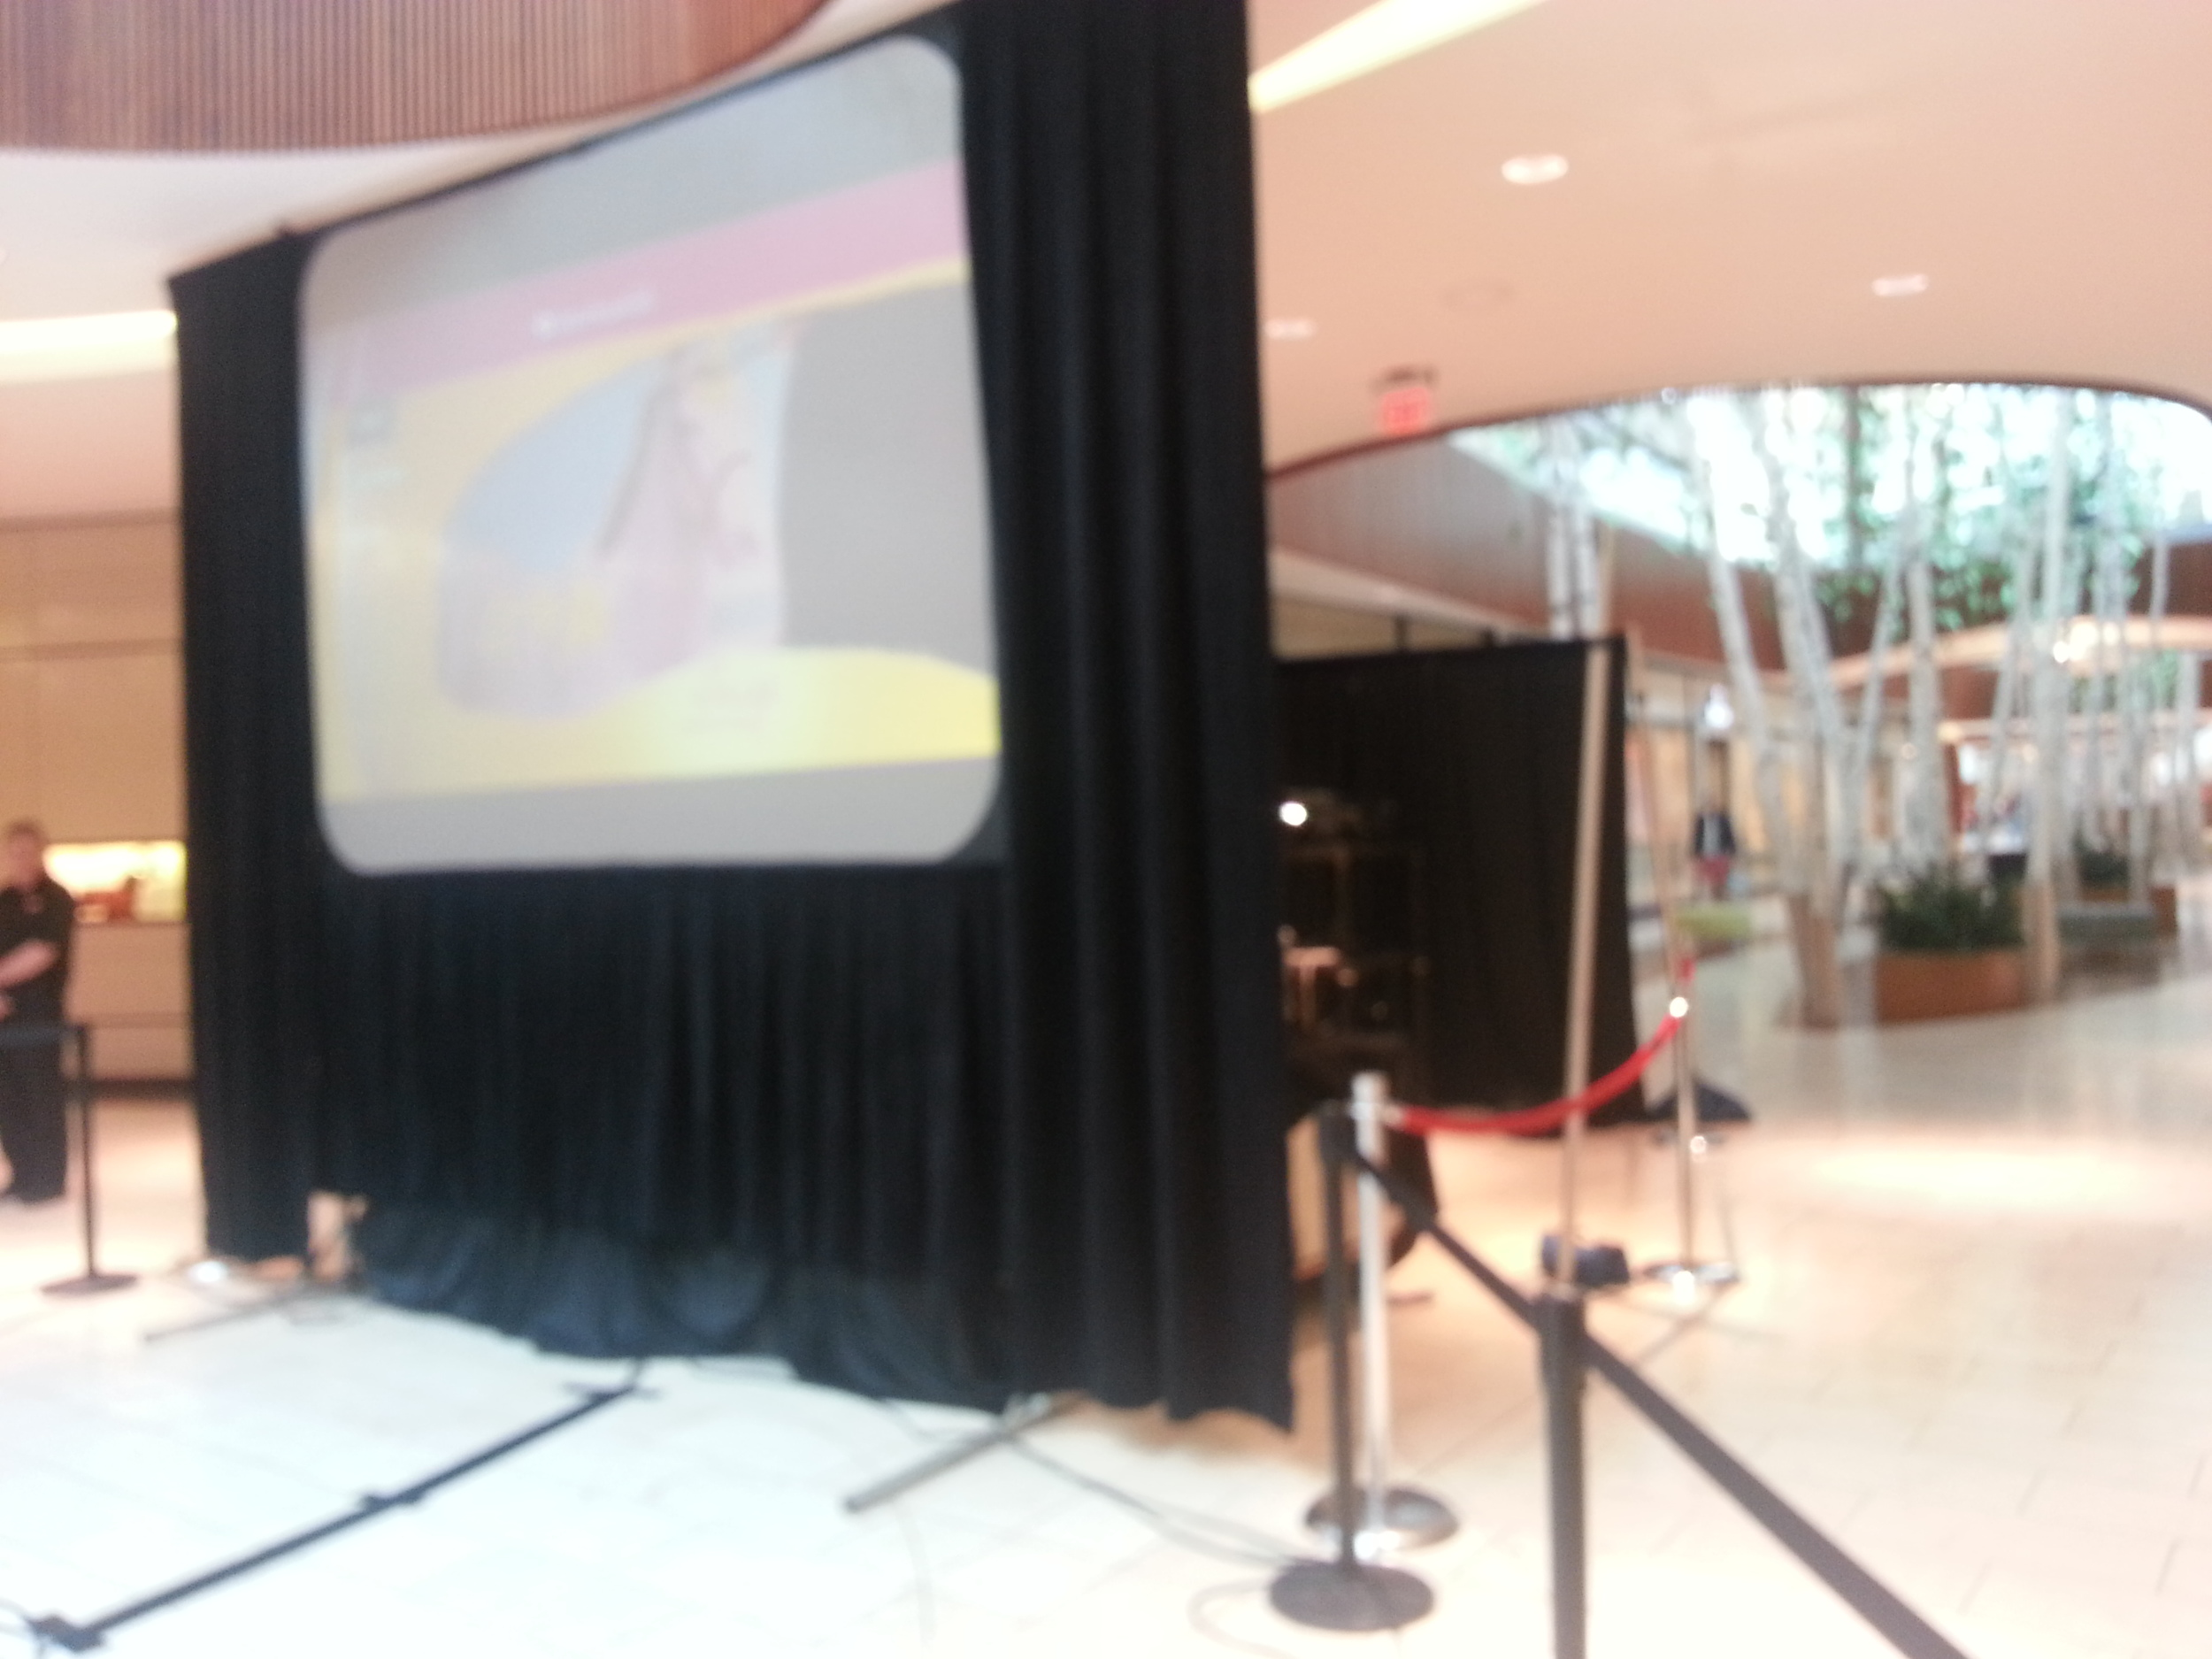 A slightly blurry camera phone picture of the screen, projector and PA system being set up at the Natick Collection.